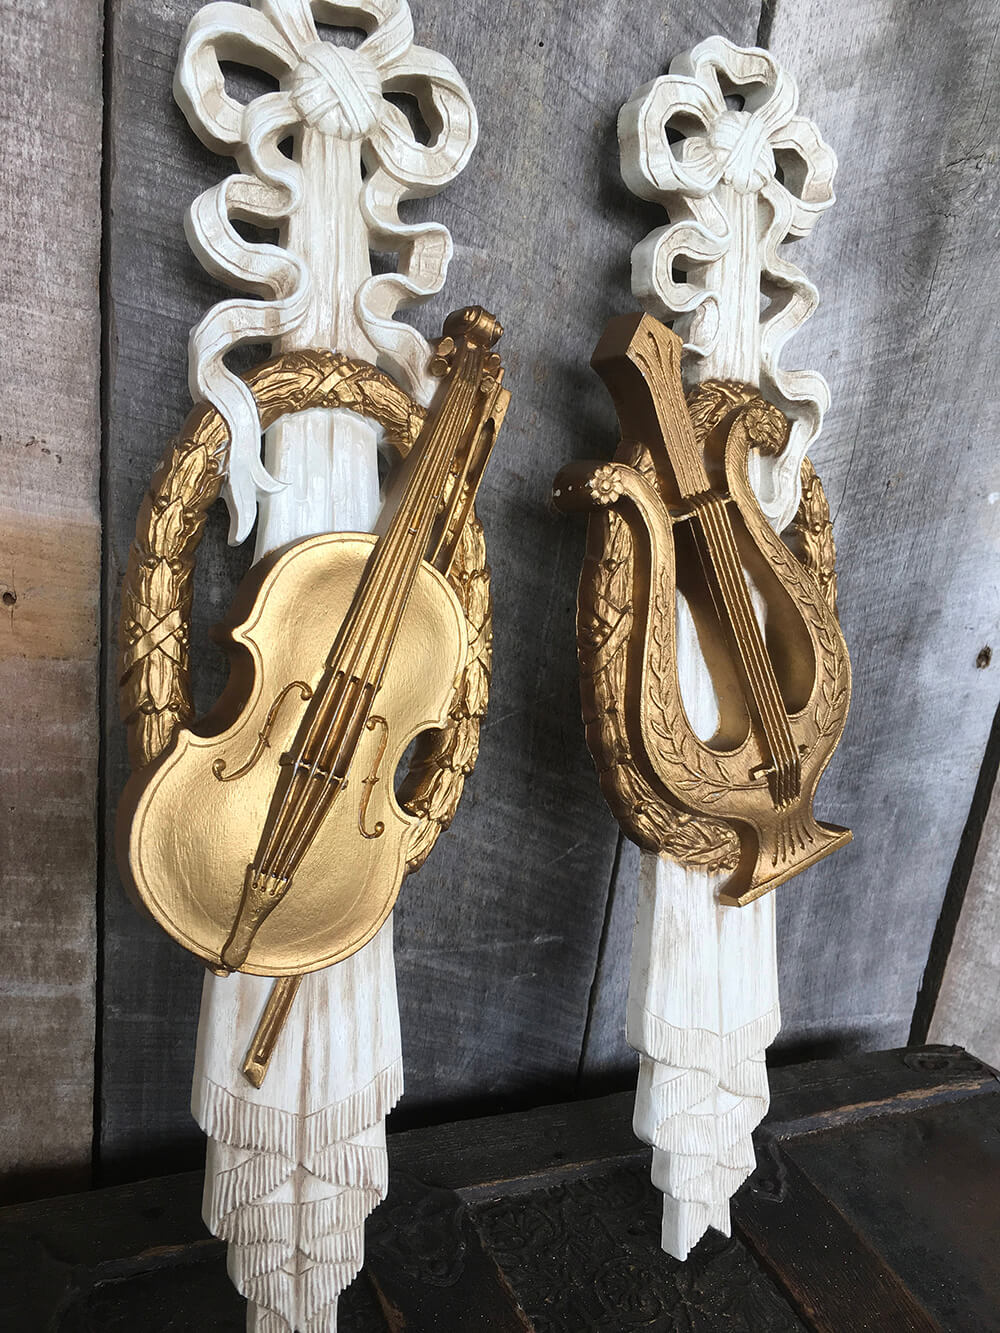 Wooden Wall hangings with Gold Instruments